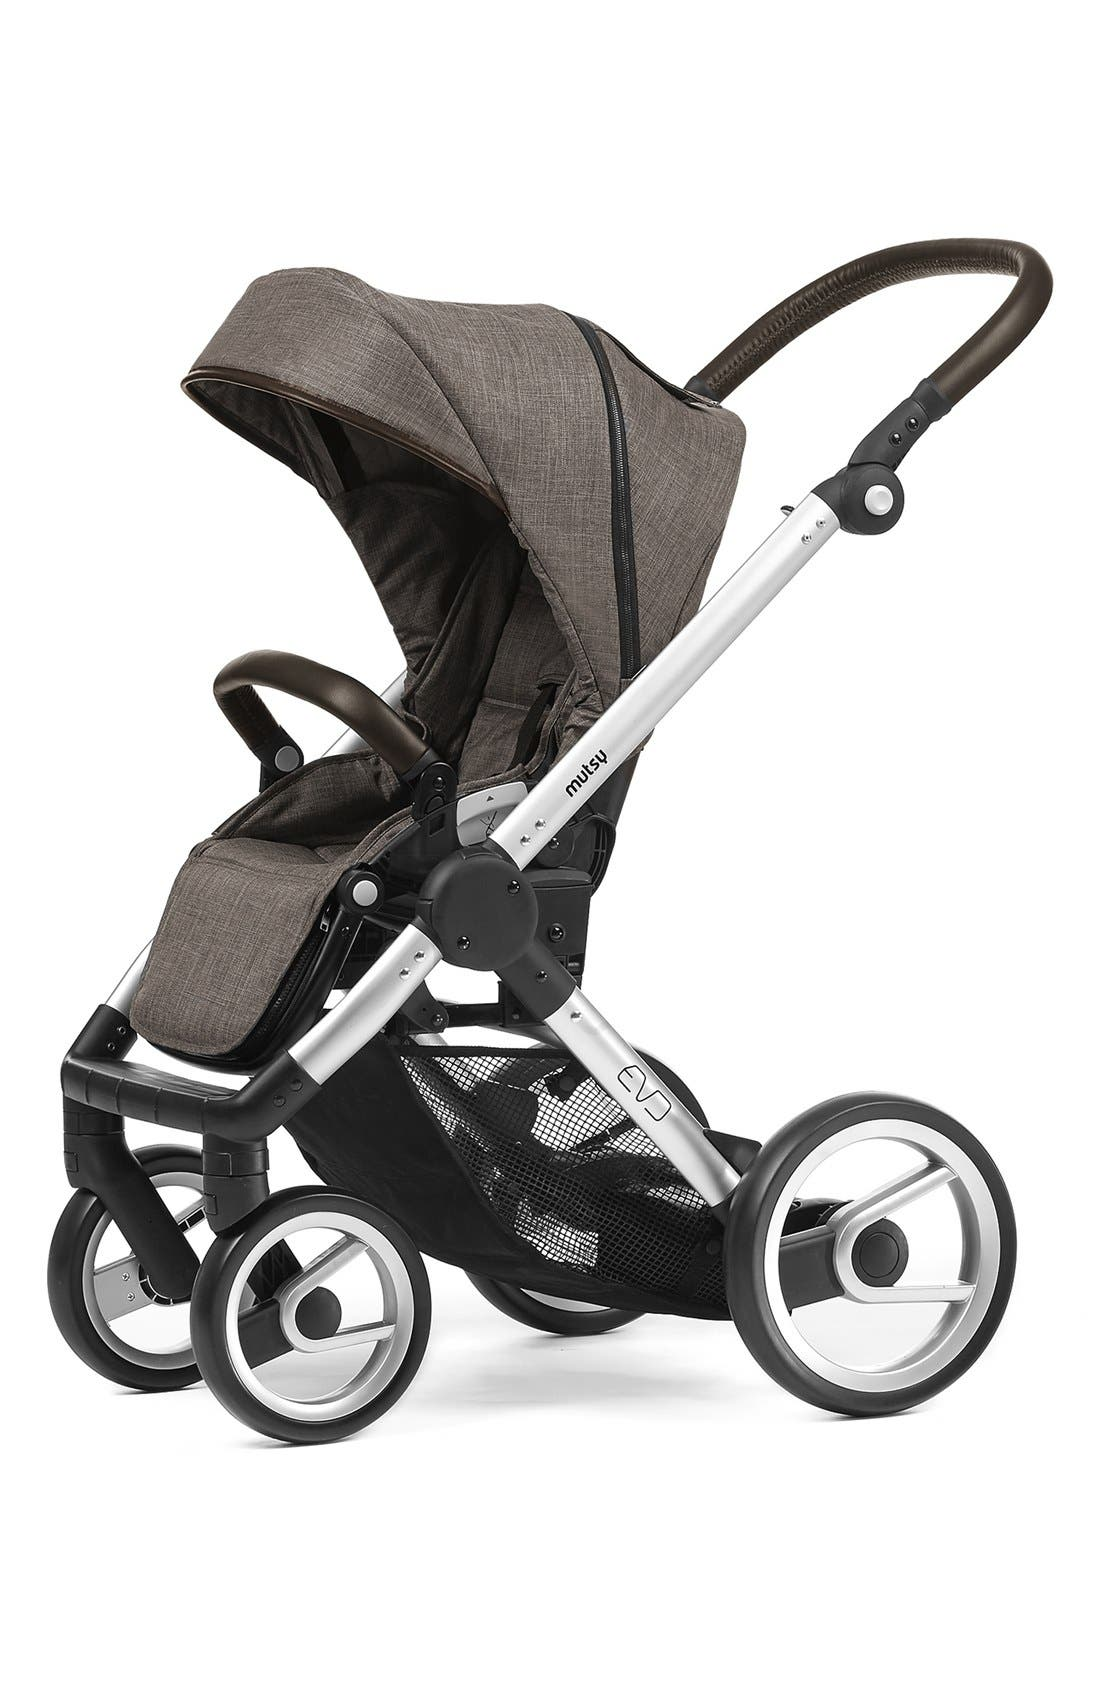 Evo - Farmer Earth Stroller,                         Main,                         color, 211